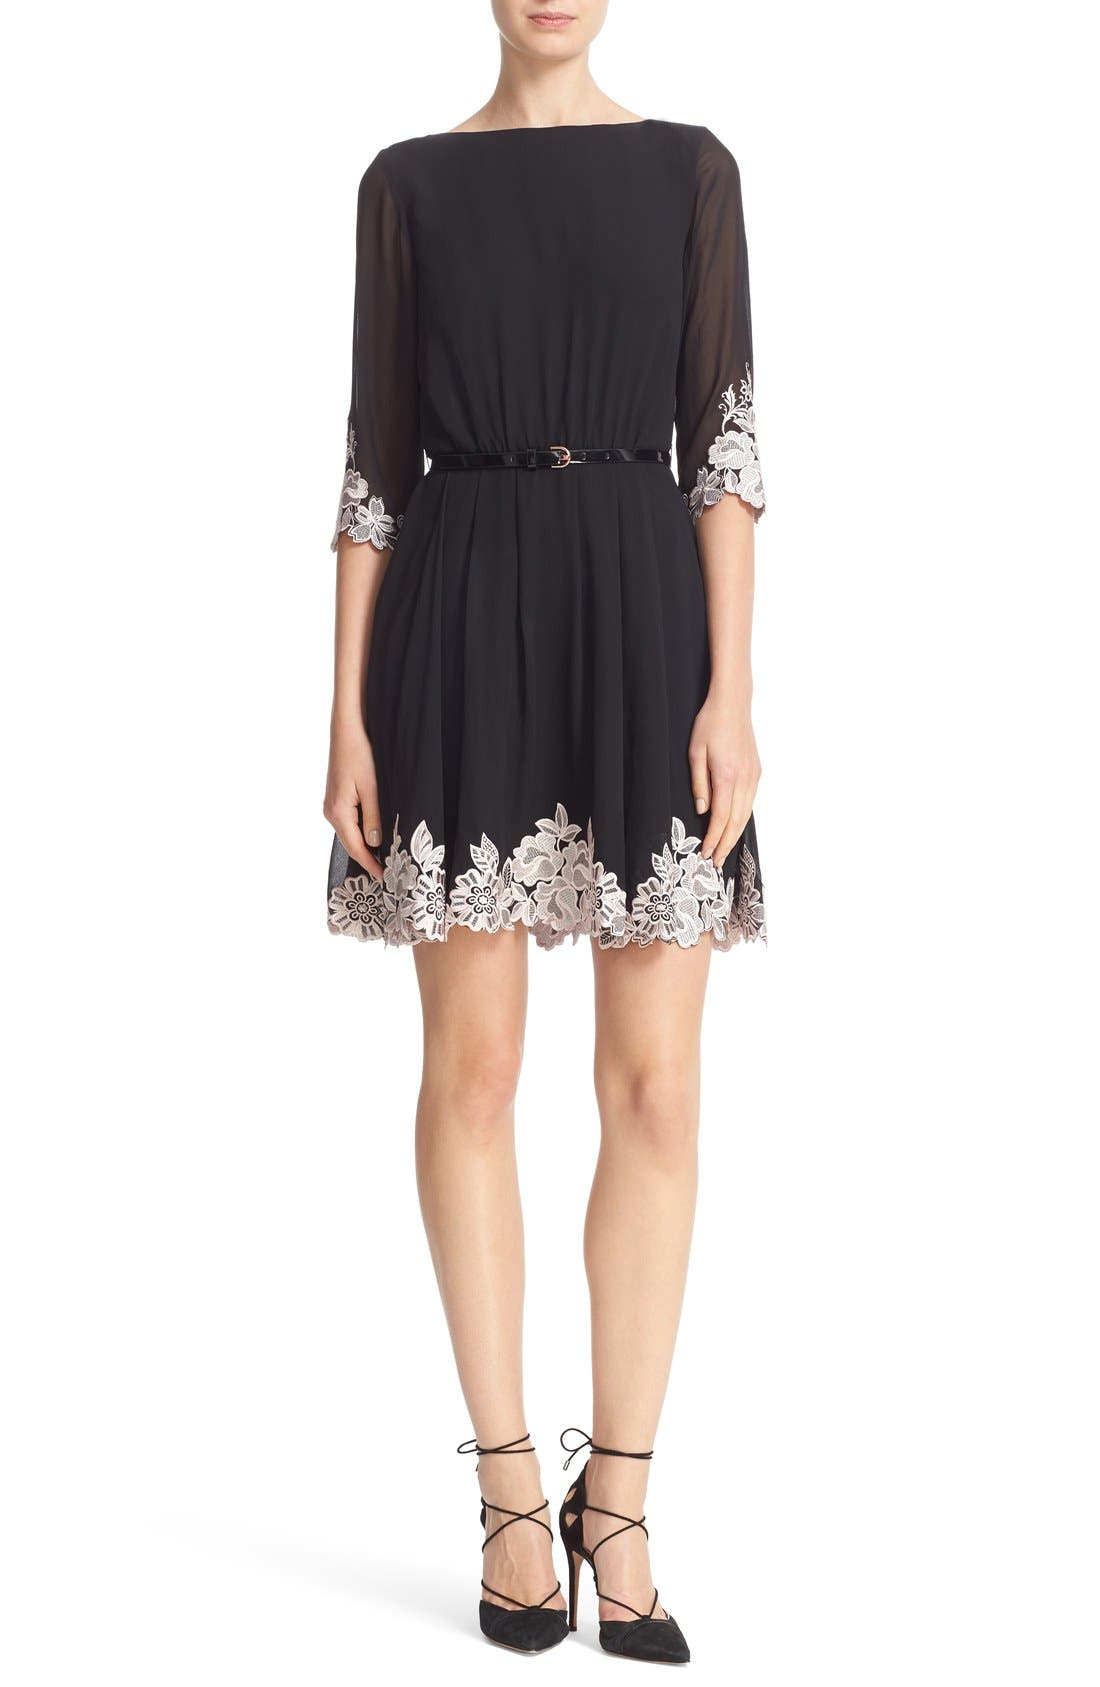 Main Image - Ted Baker London Feay Belted Lace Embellished Dress